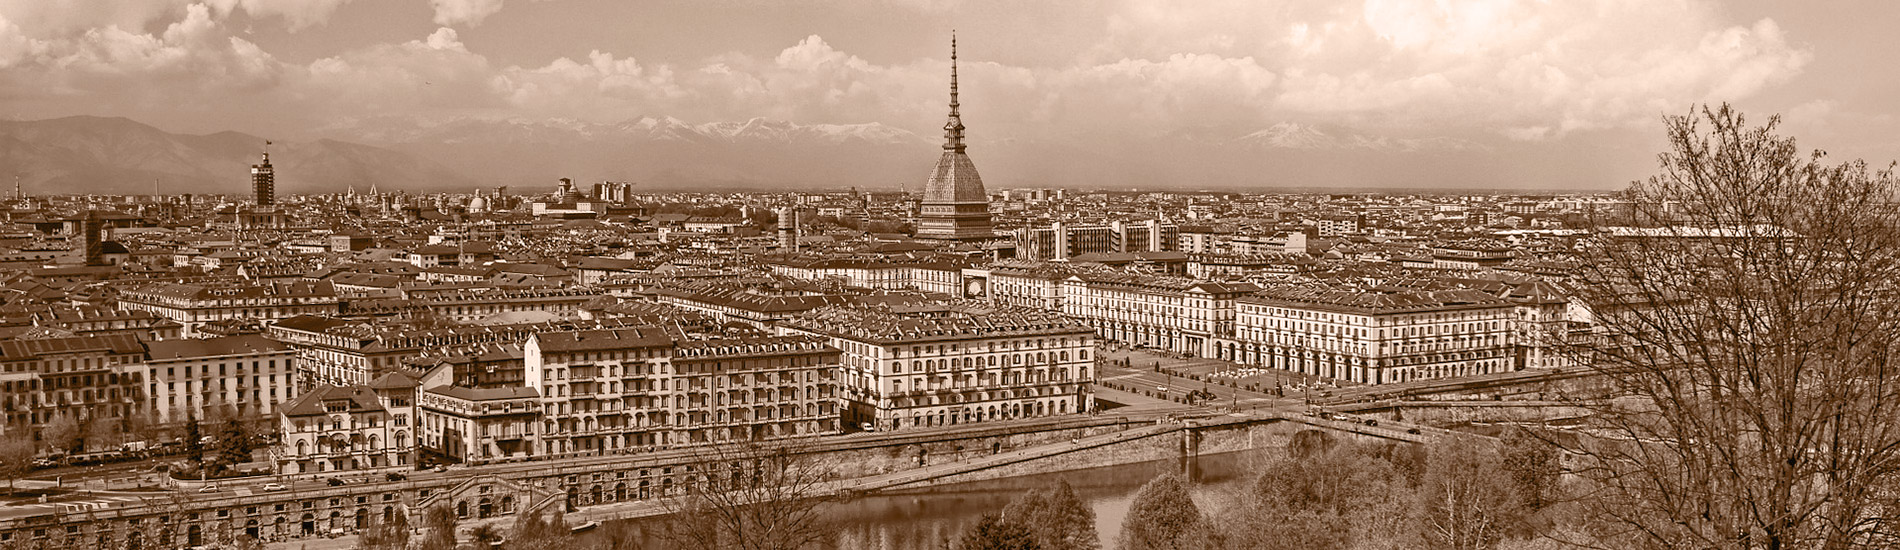 Investigations in Turin